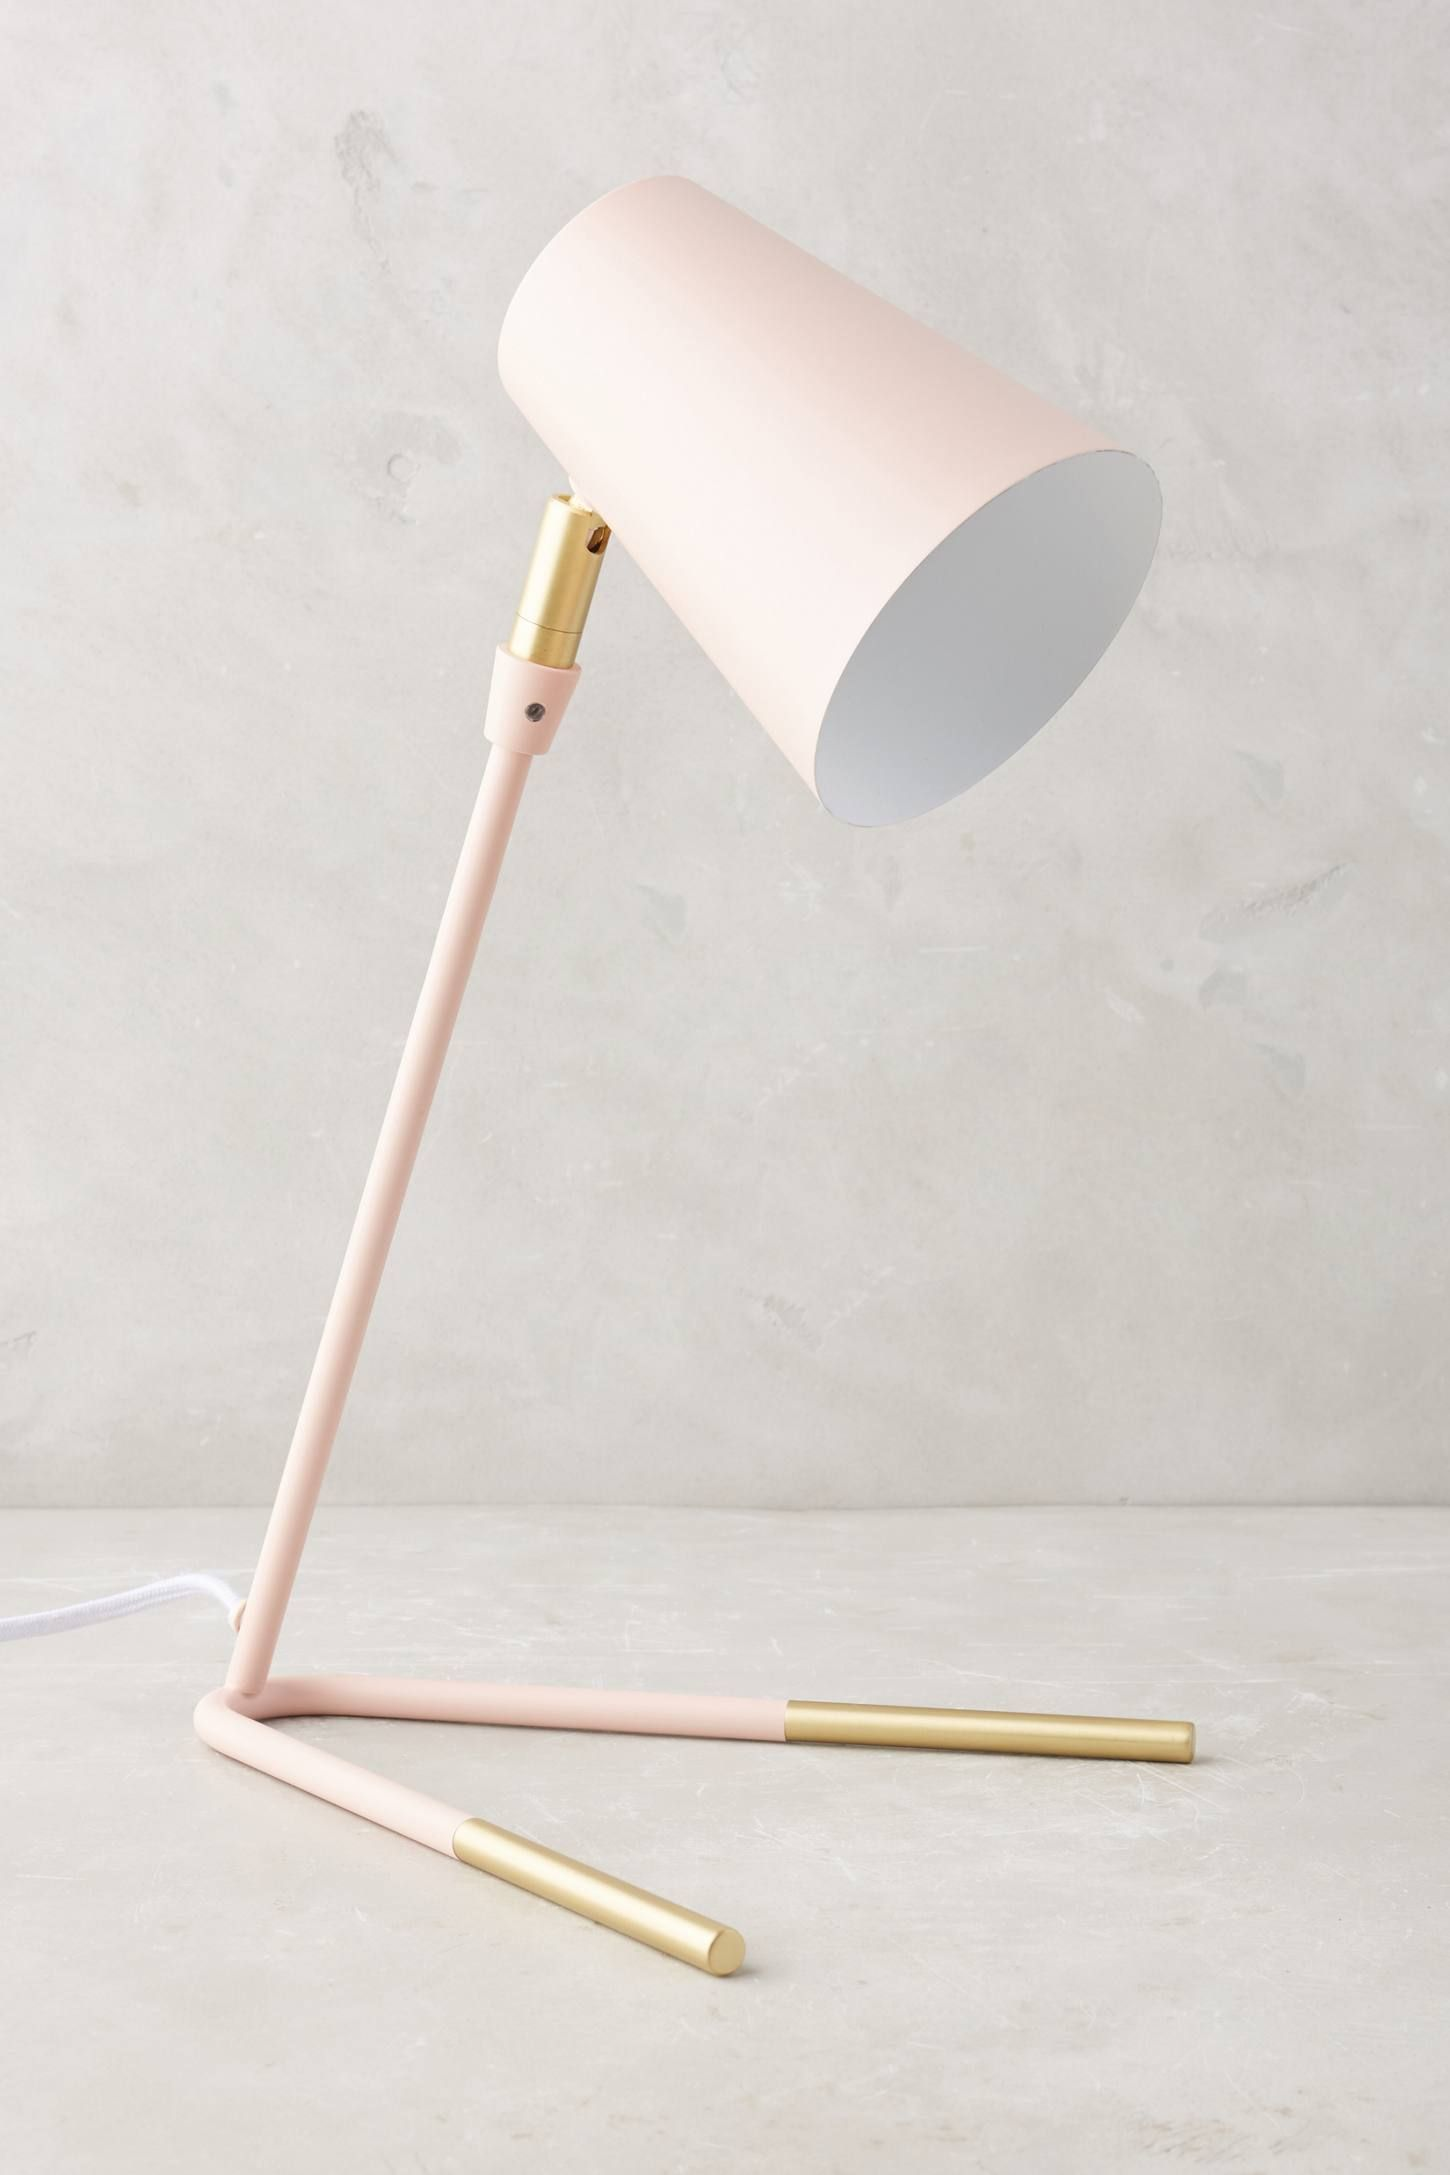 Shop The Gold Dipped Task Lamp And More Anthropologie At Anthropologie  Today. Read Customer